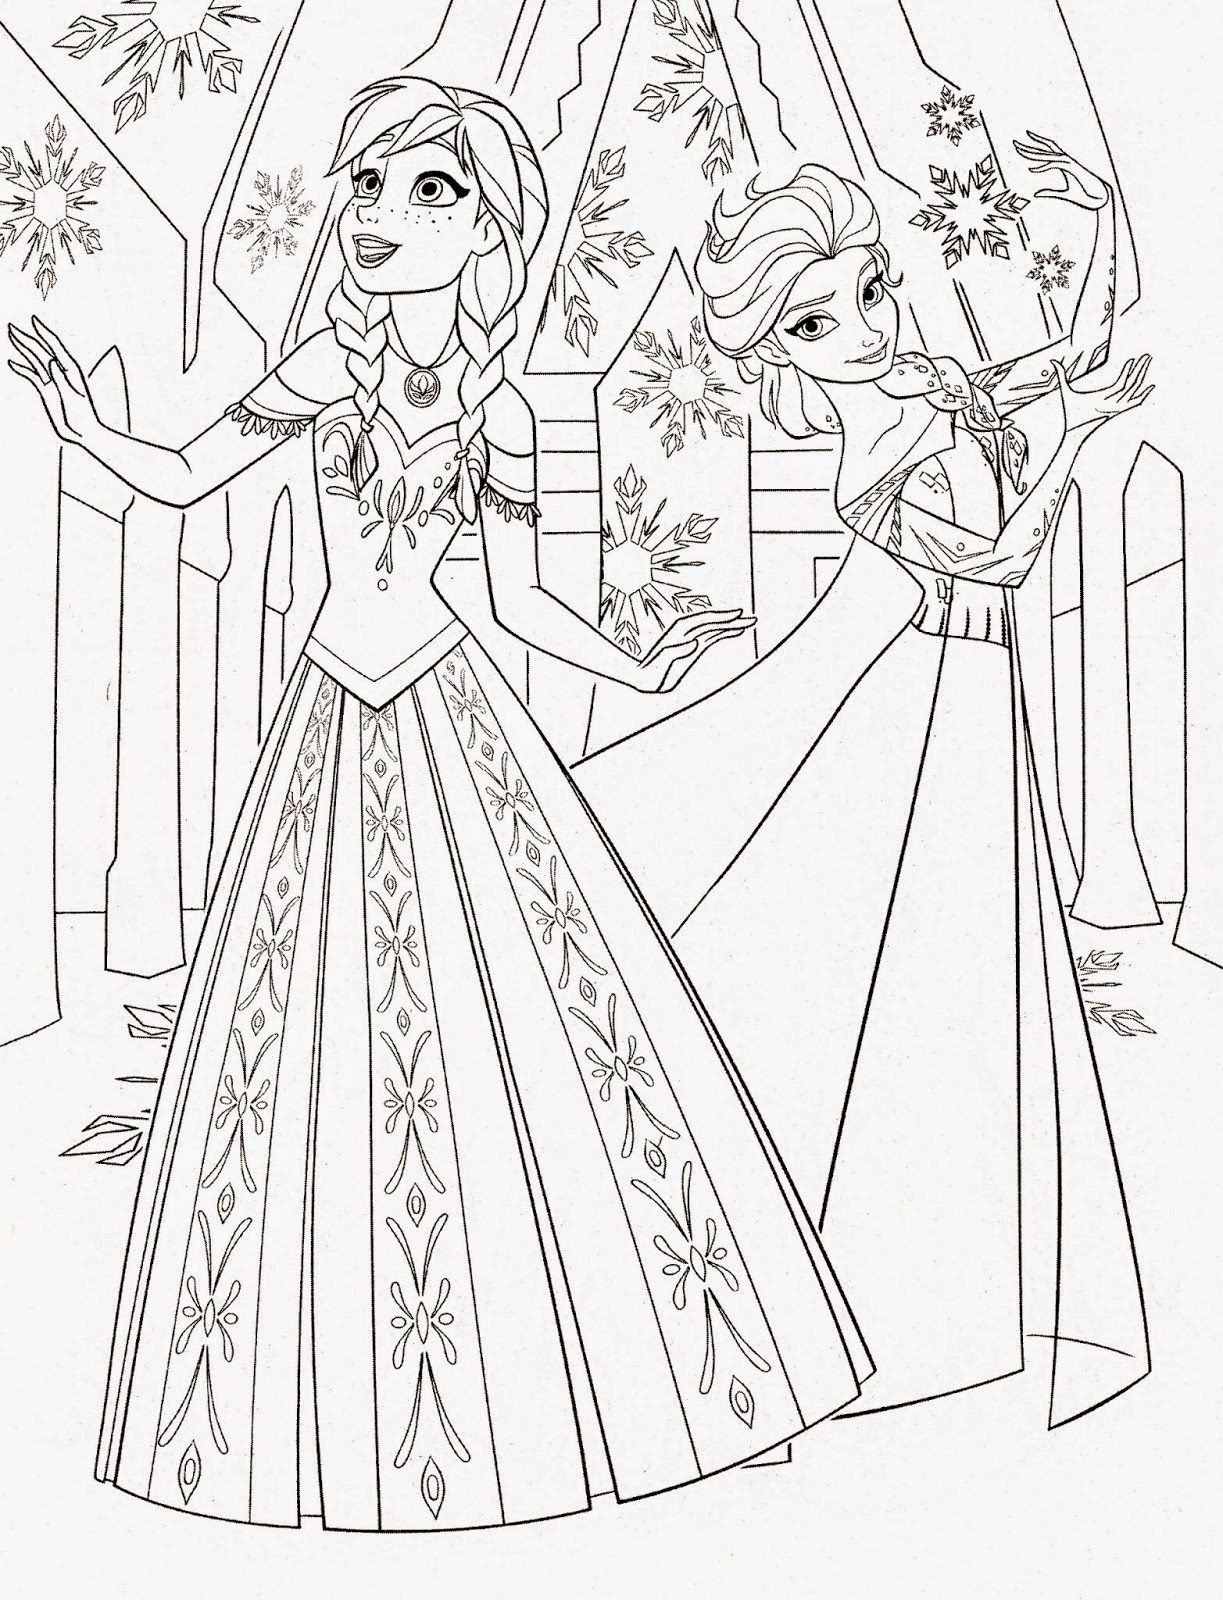 Free Frozen Coloring Pages Inspirational Pin By Yooper Girl On Color Fashion Disney Princess Coloring Pages Elsa Coloring Pages Princess Coloring Pages